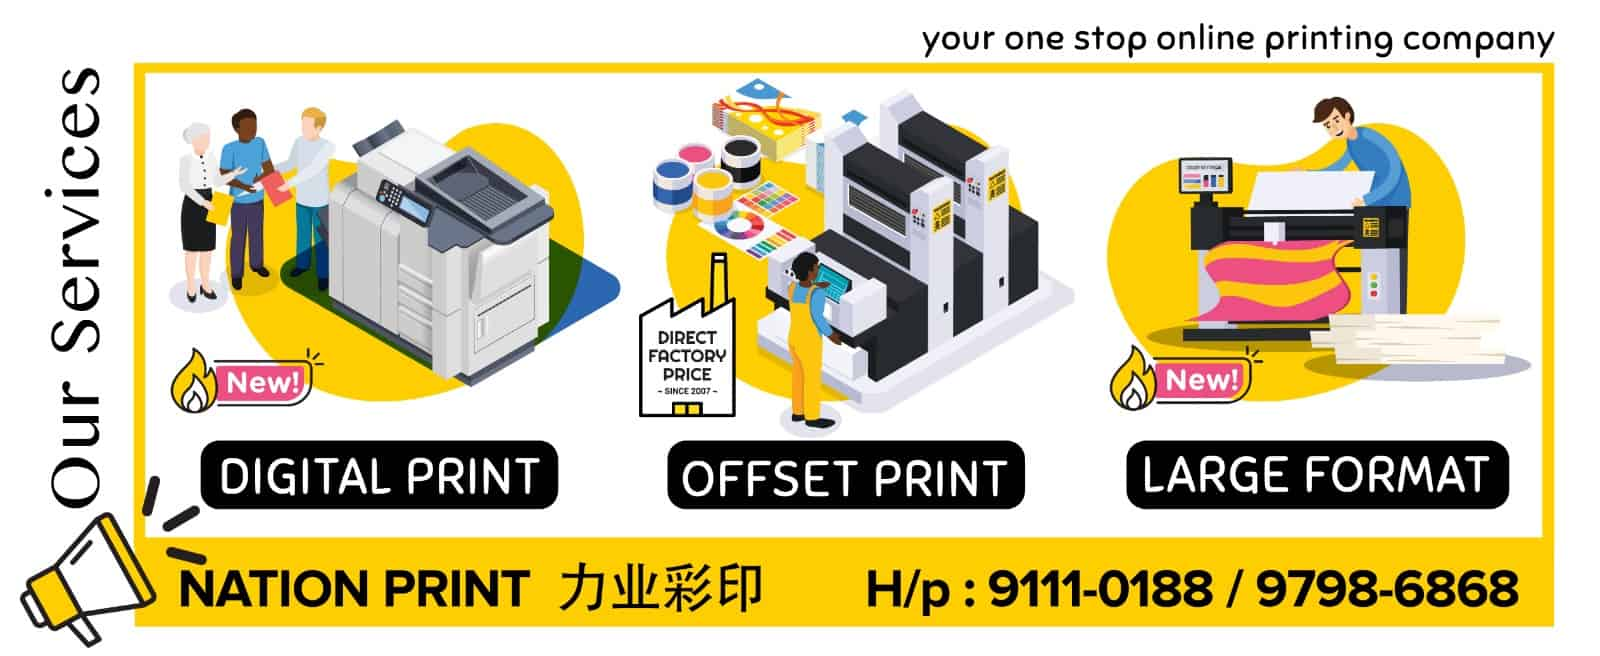 DigitalPrint-LargeFormatPrinting,OffsetPrinting